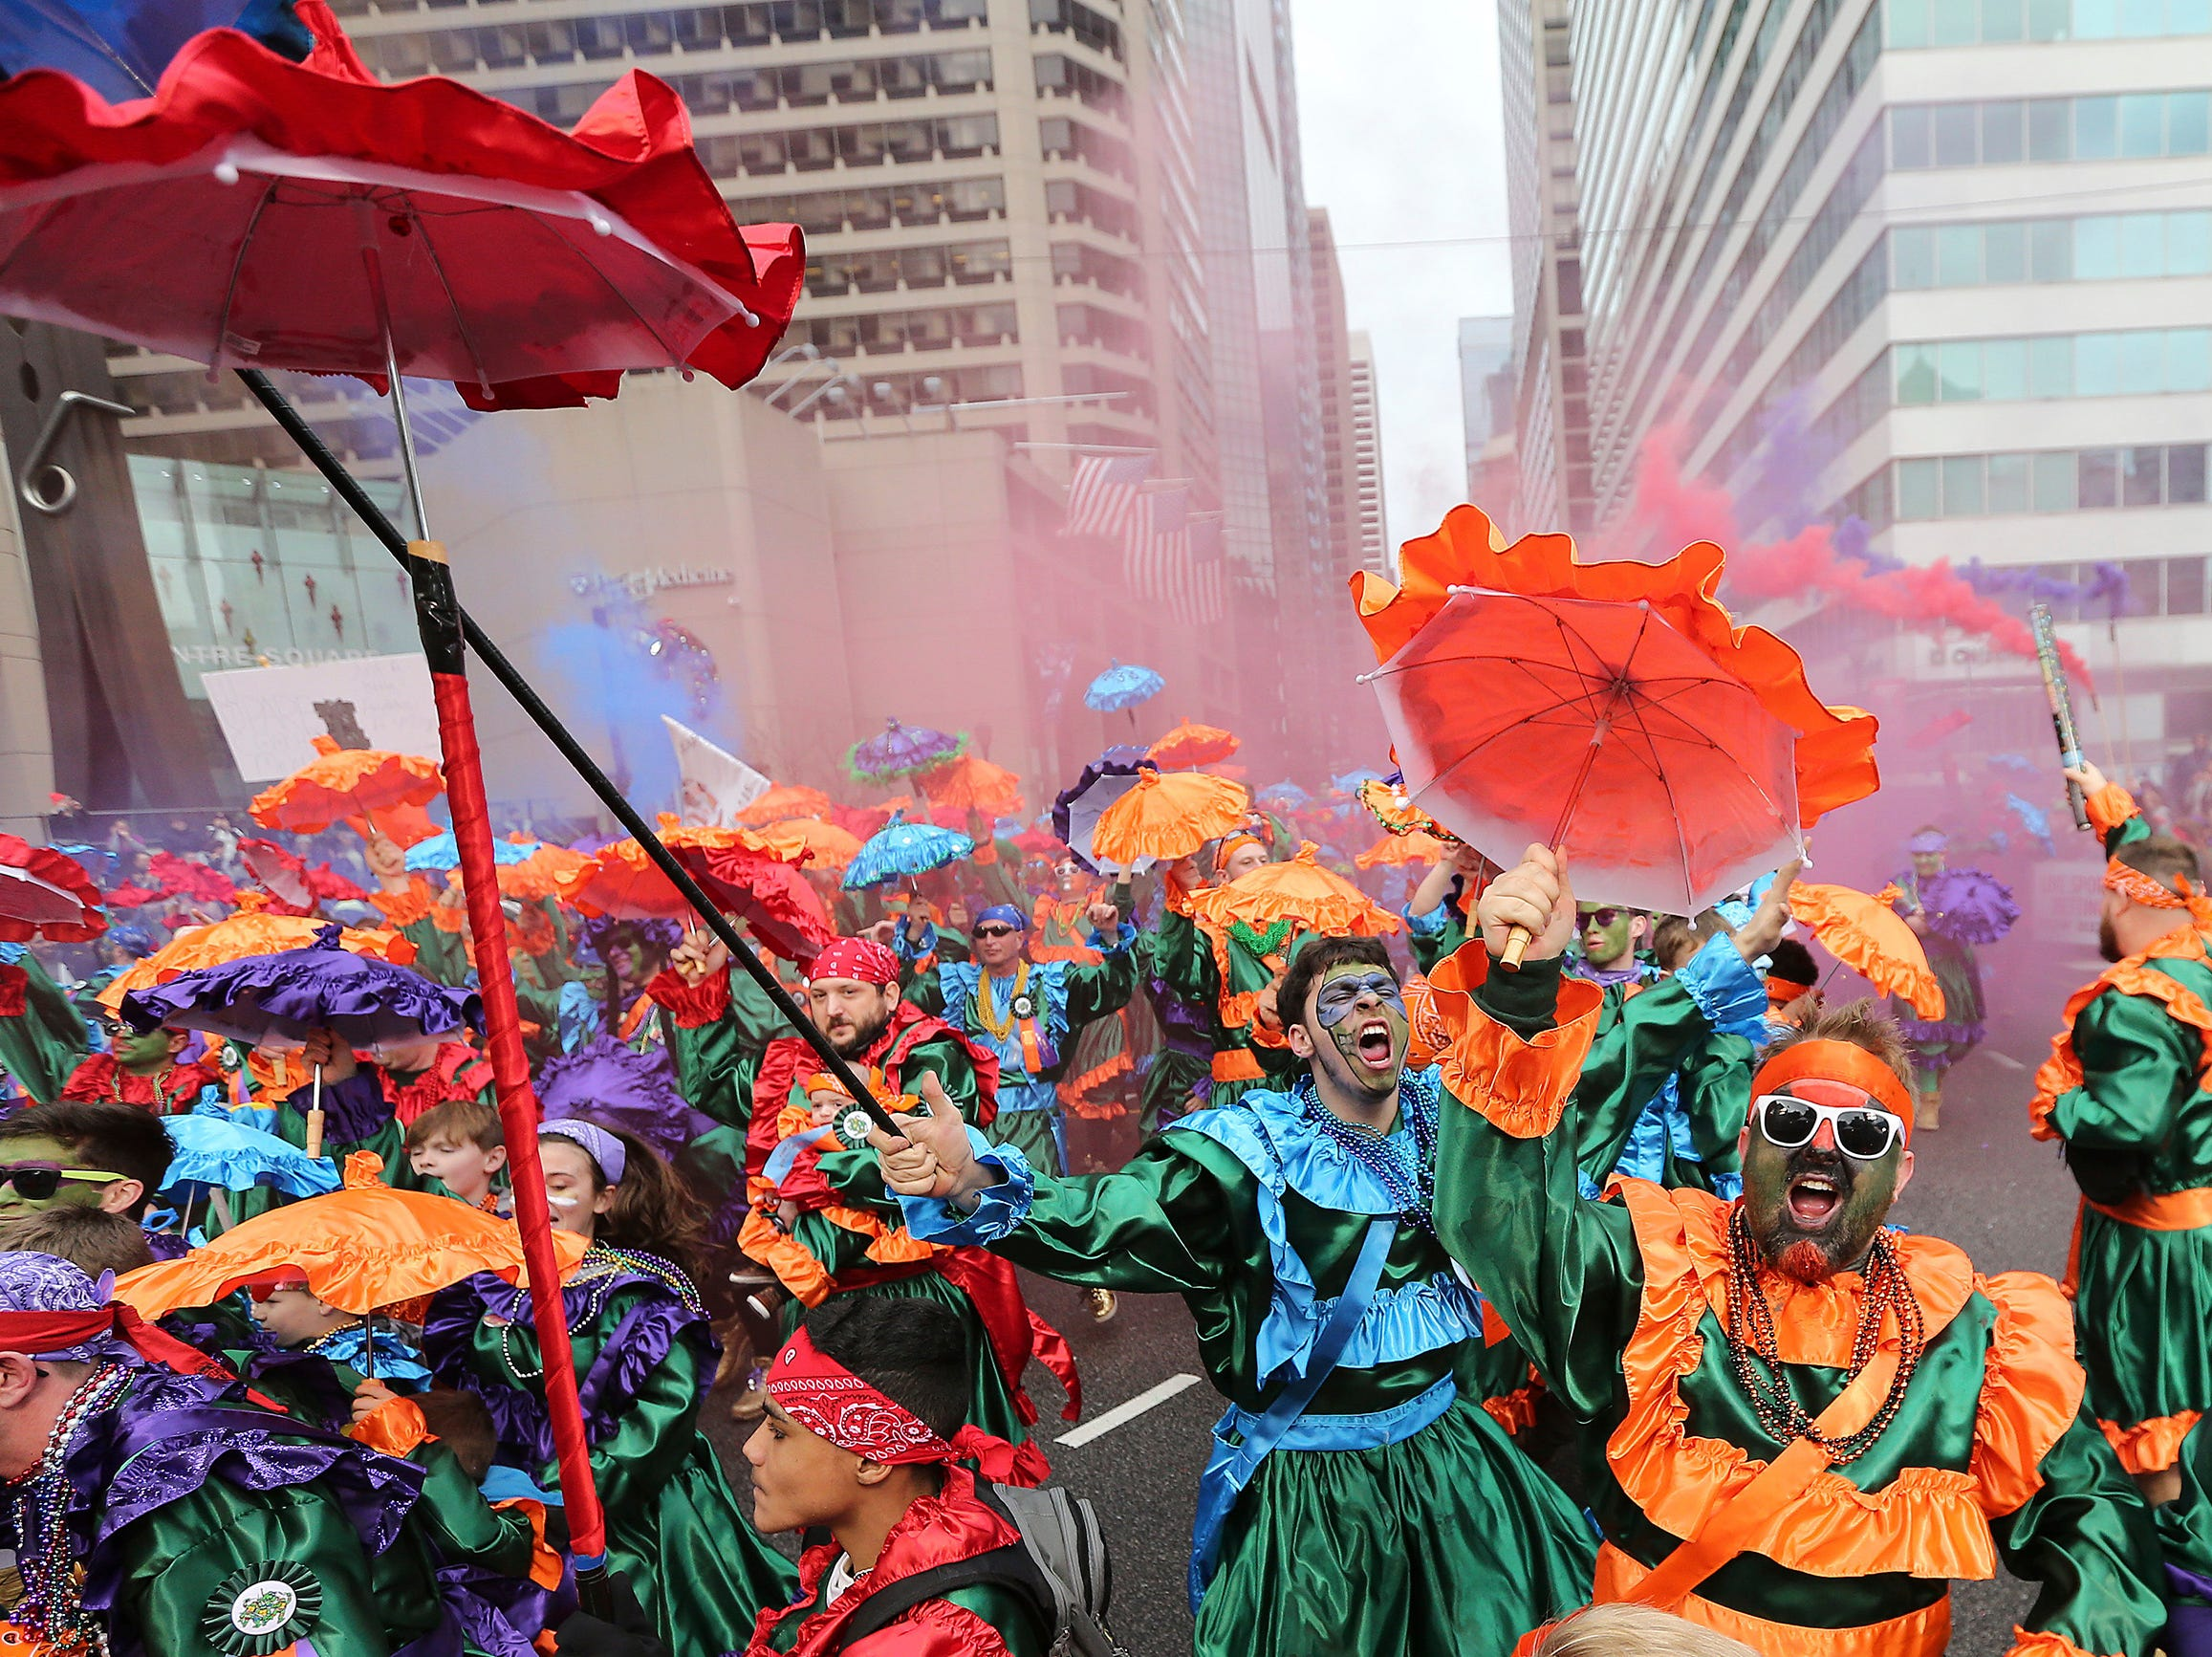 Members of the Saints Wench Brigade strut in front of the judges at City Hall during the Mummers Parade, Tuesday, Jan. 1, 2019, in Philadelphia. (David Maialetti/The Philadelphia Inquirer via AP)